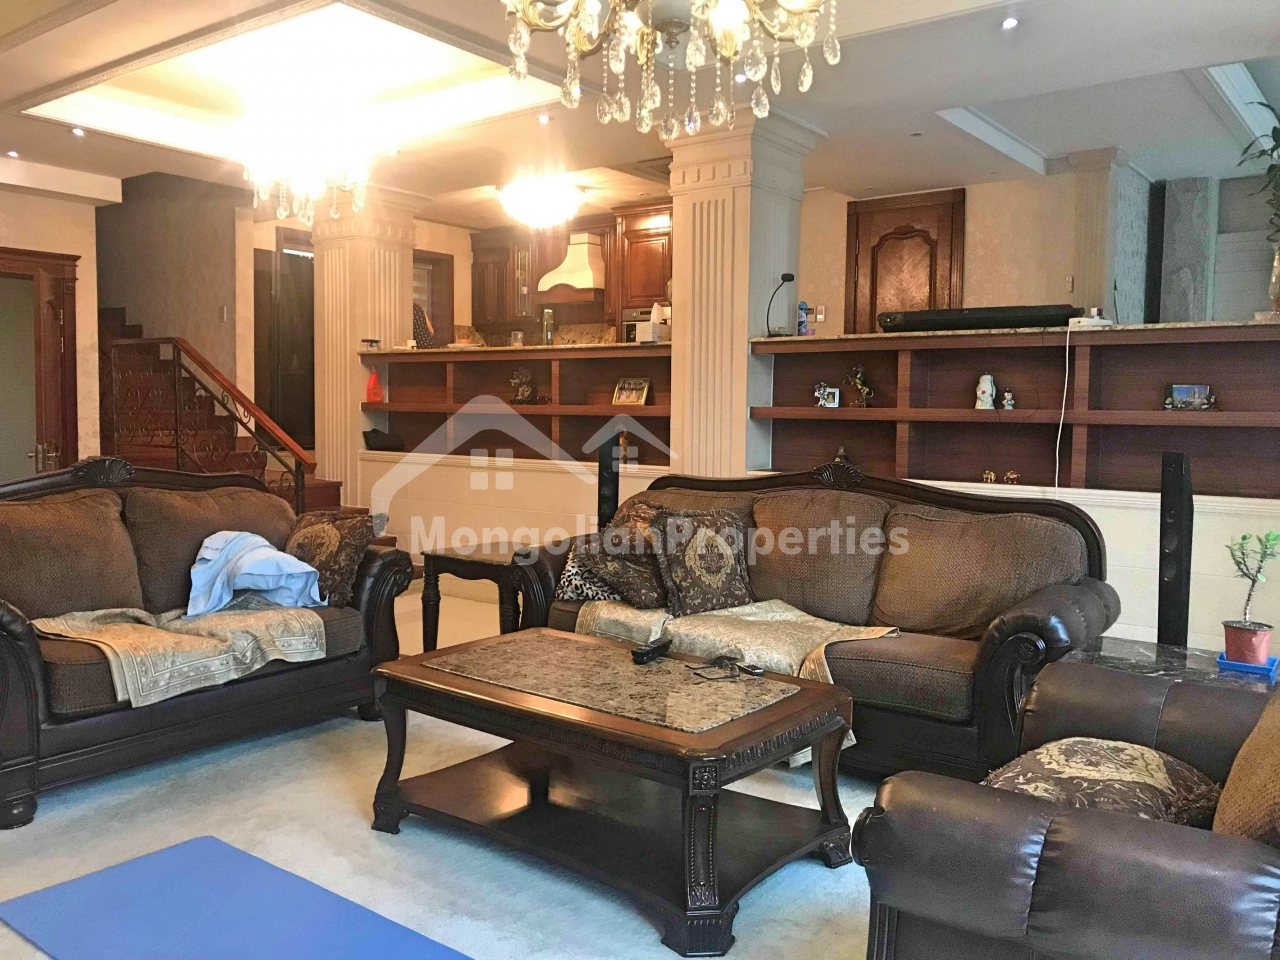 FOR SALE: TOWNHOUSE FOR SALE IN GERELT/LIGHT COMPLEX